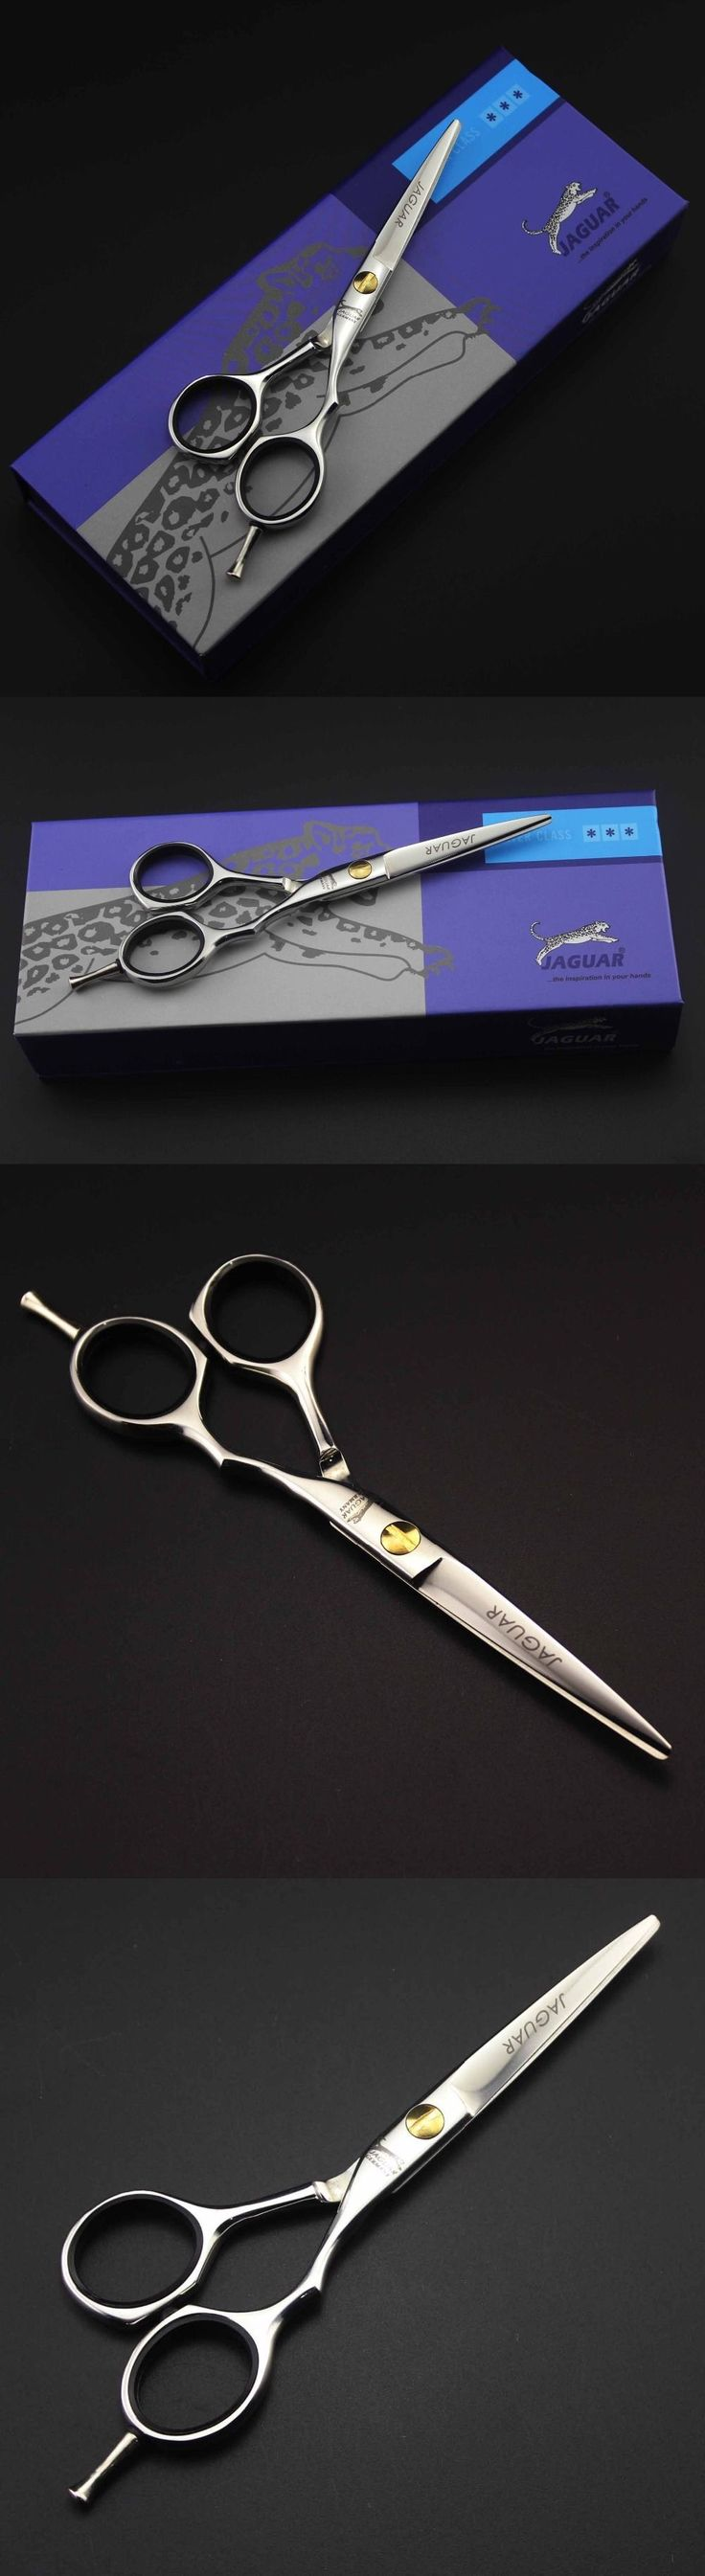 Scissors and Shears: Barber Salon Hair Professional Thinning Scissors Shears Hairdressing New Jaguar -> BUY IT NOW ONLY: $49.95 on eBay!